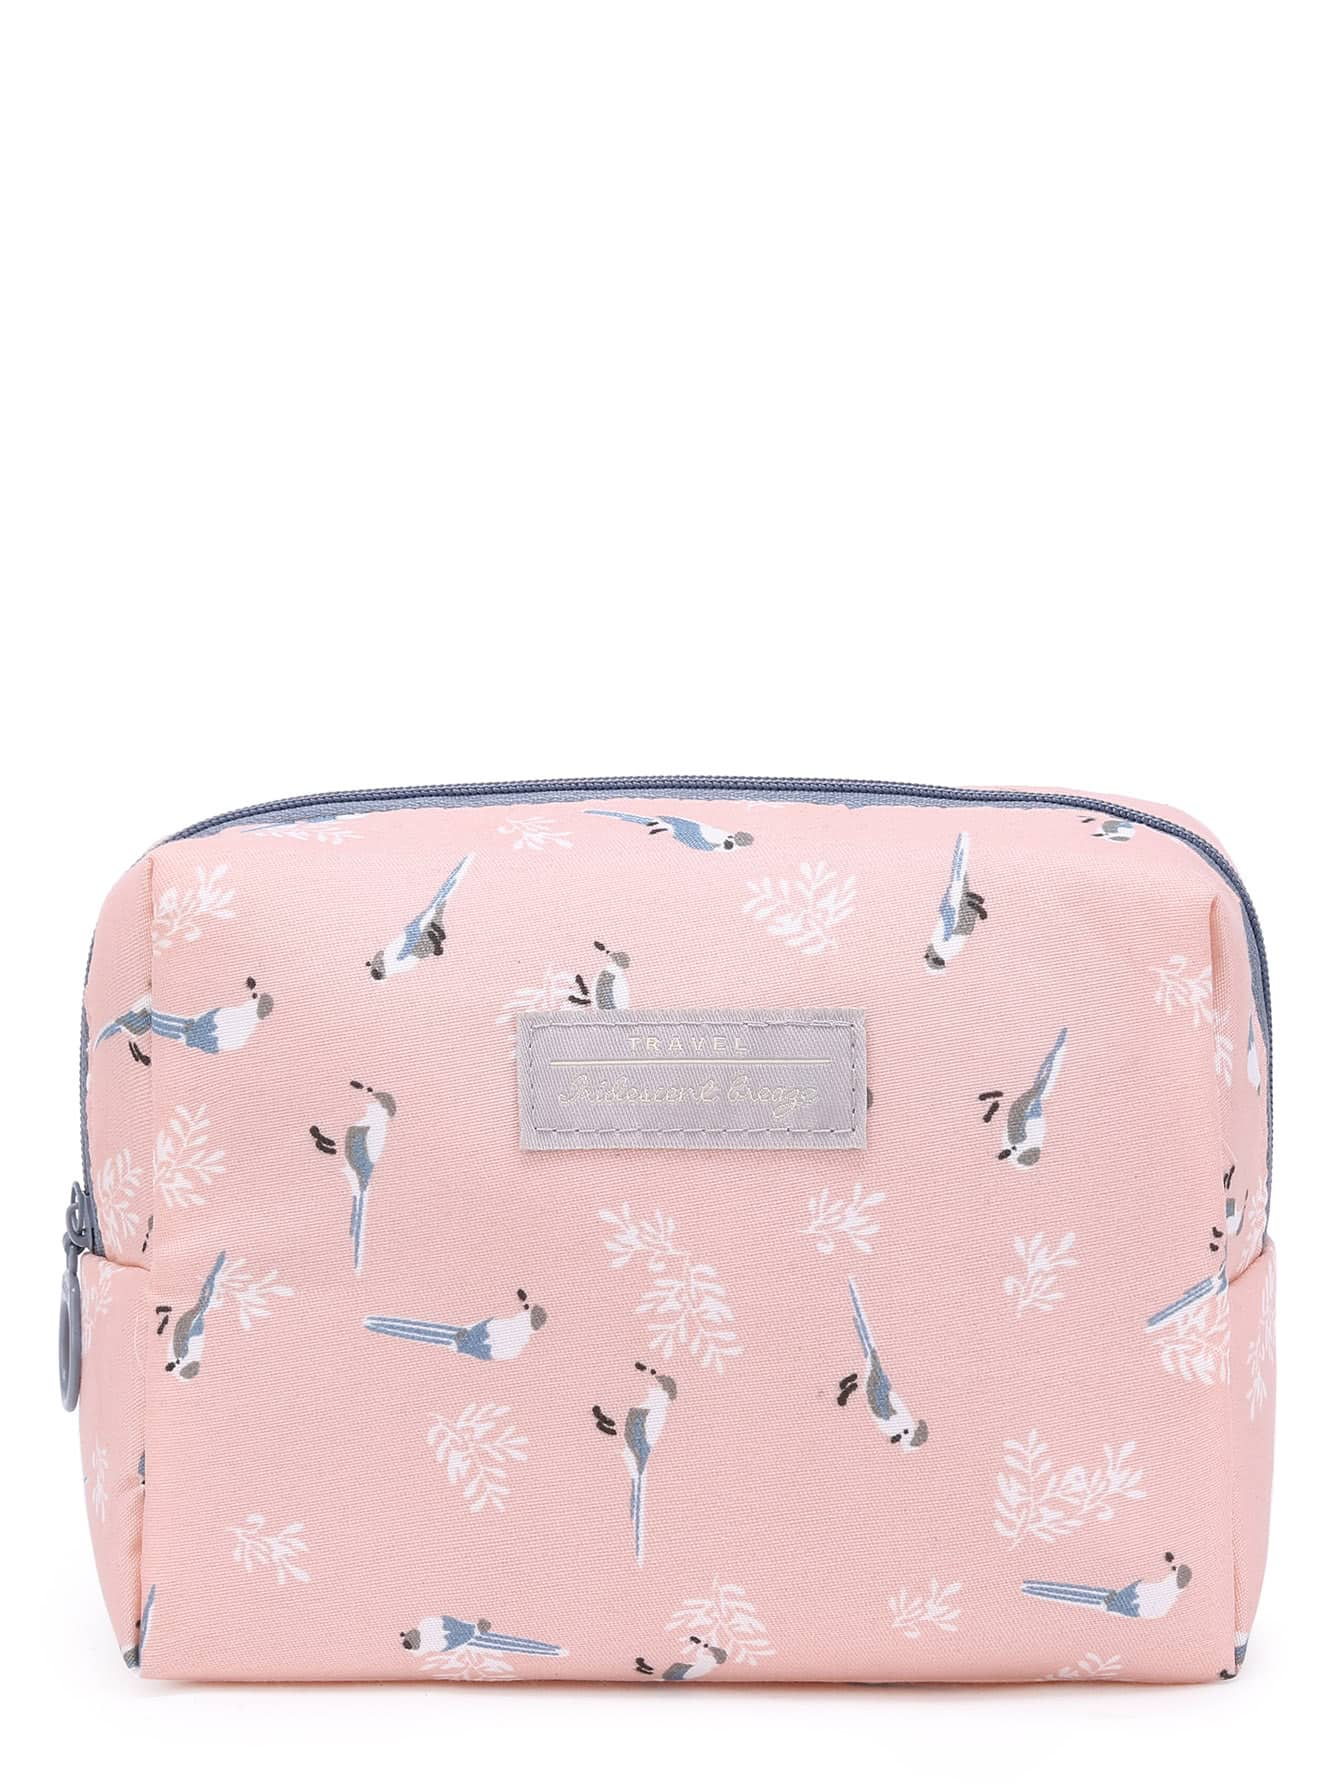 Image of Bird Print Accessory Pouch